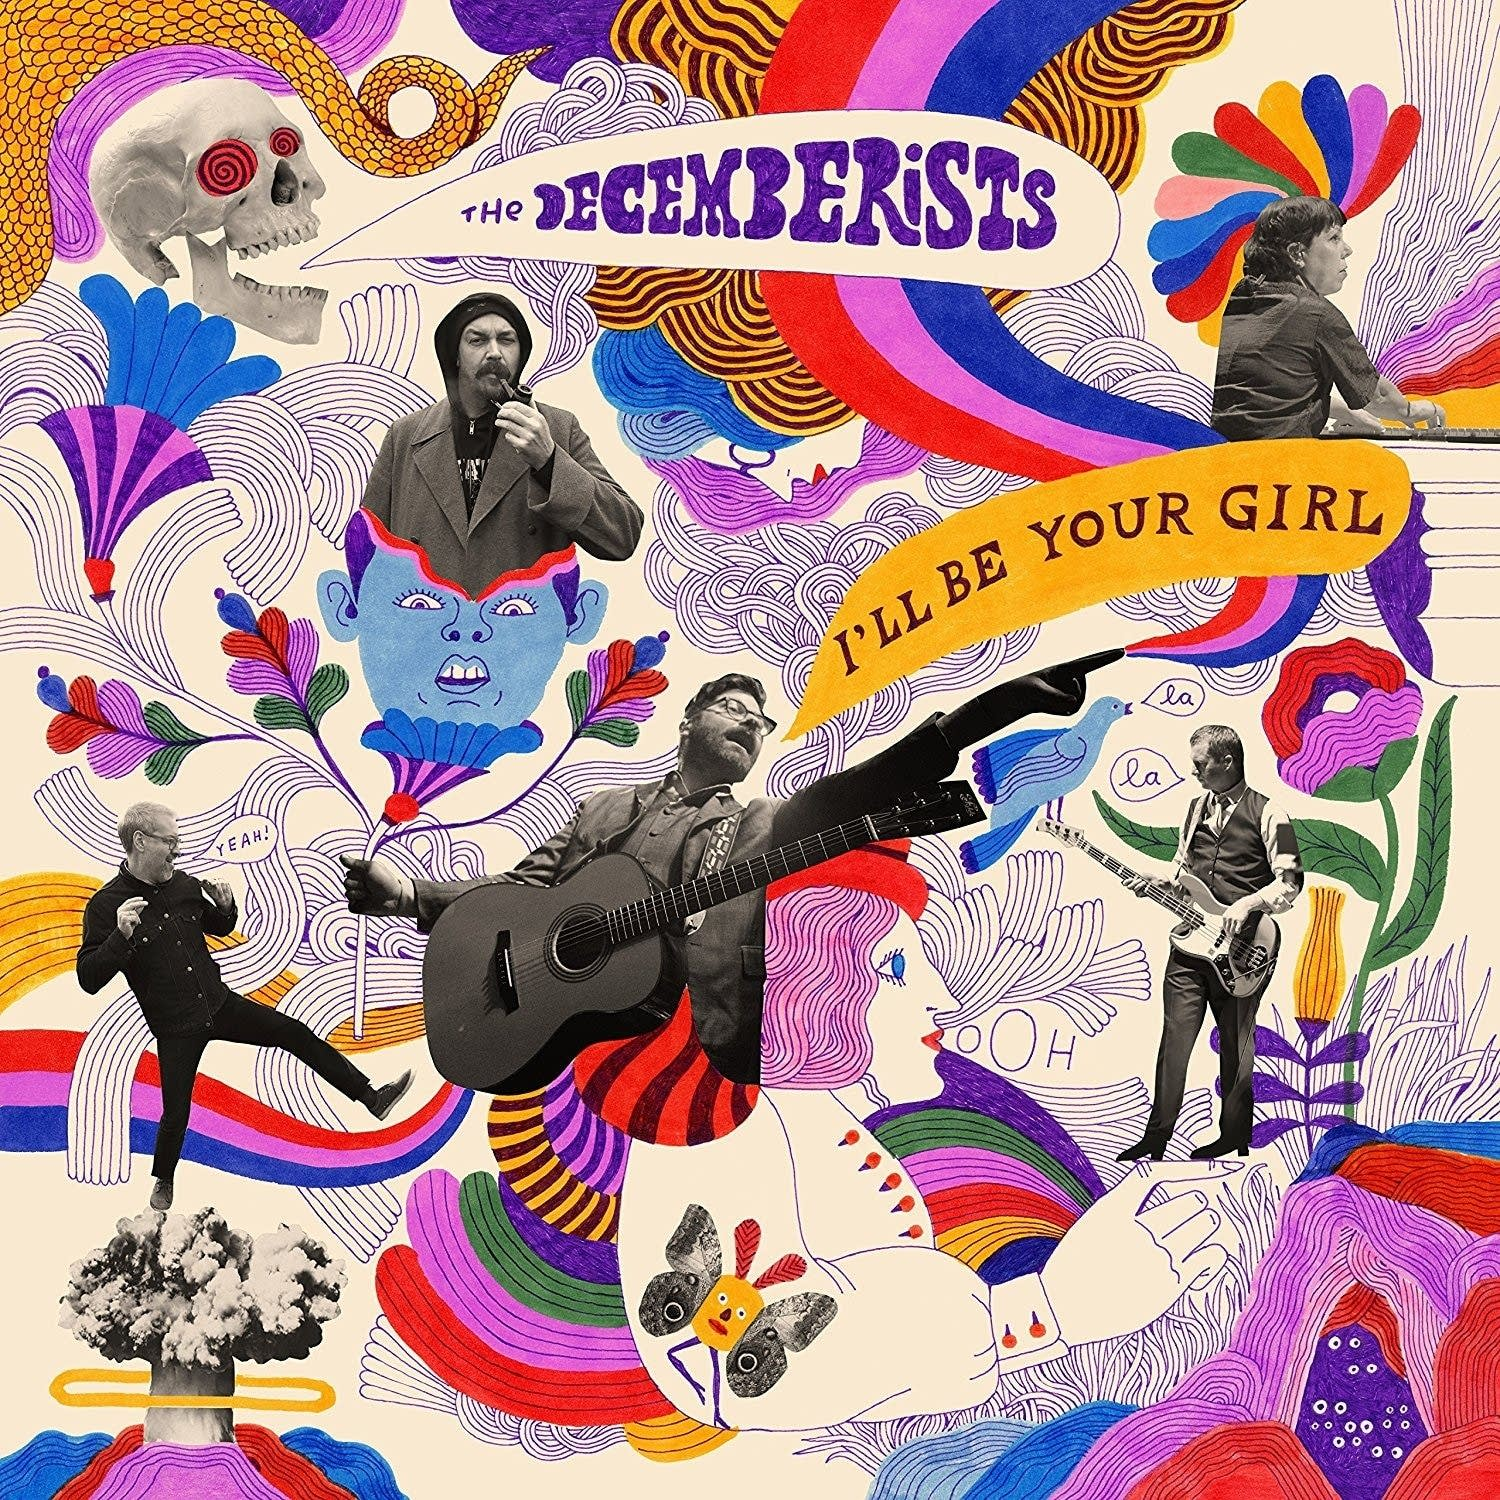 The Decemberists, 'I'll Be Your Girl'